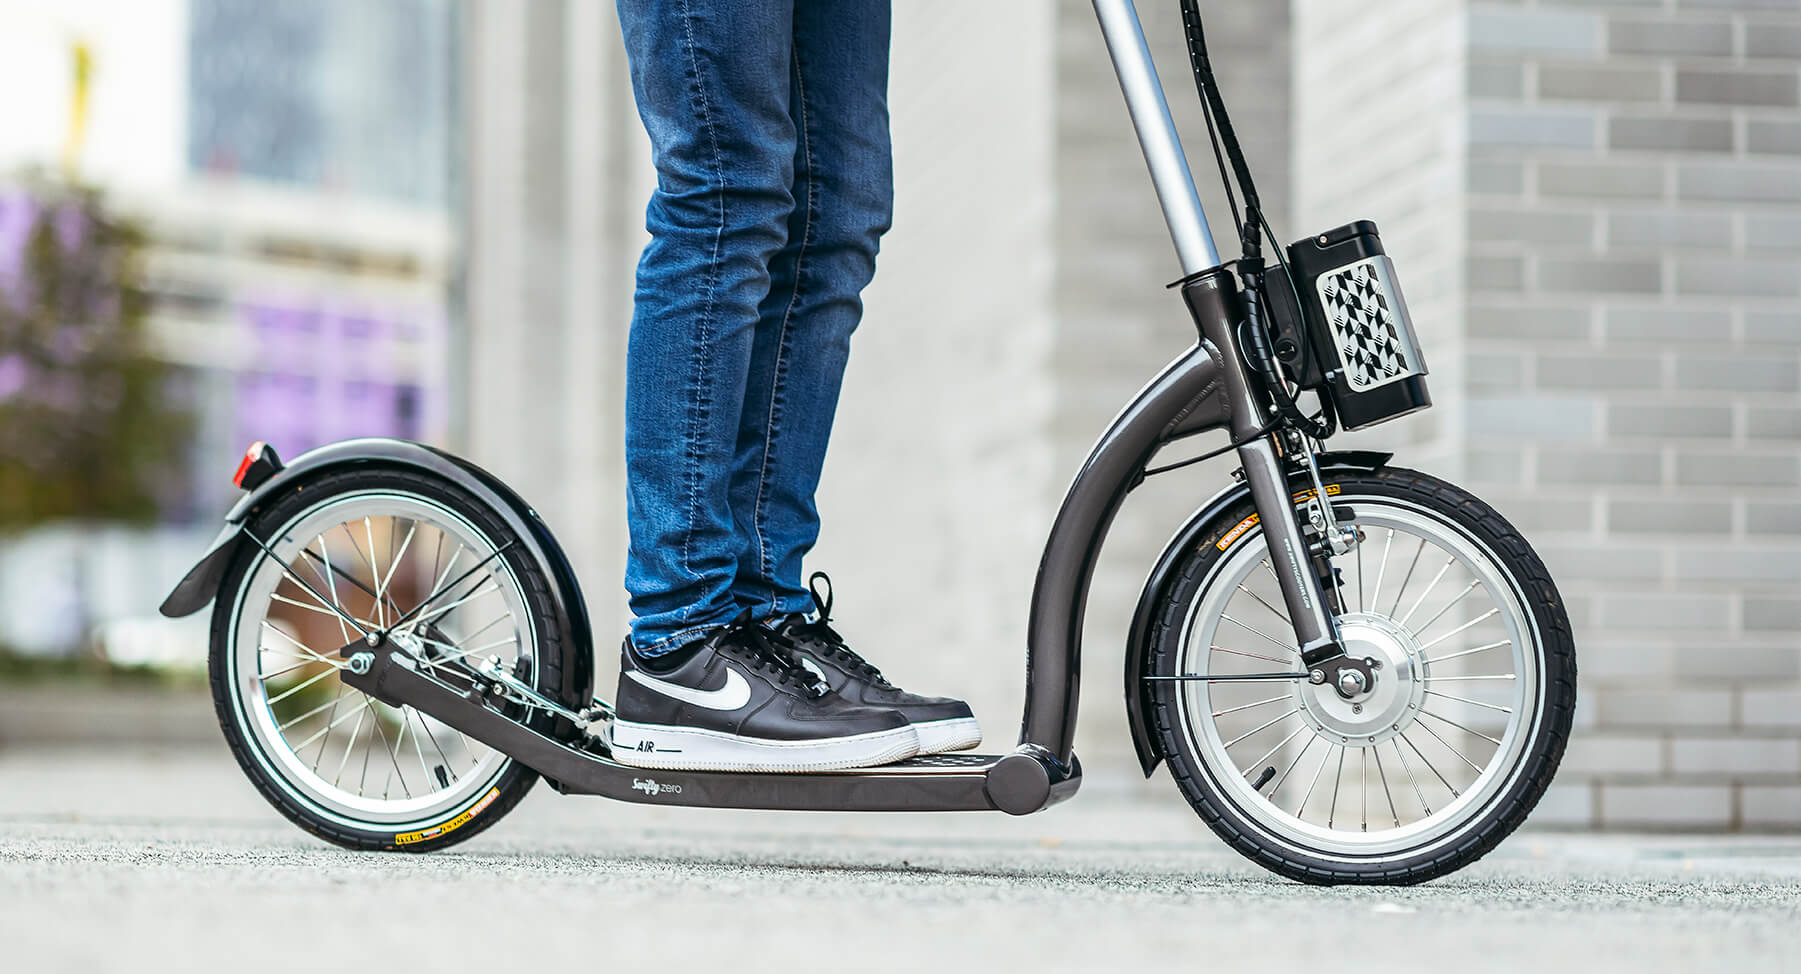 electric scooter for heavy adults, big wheel electric scooter, electric adult scooter